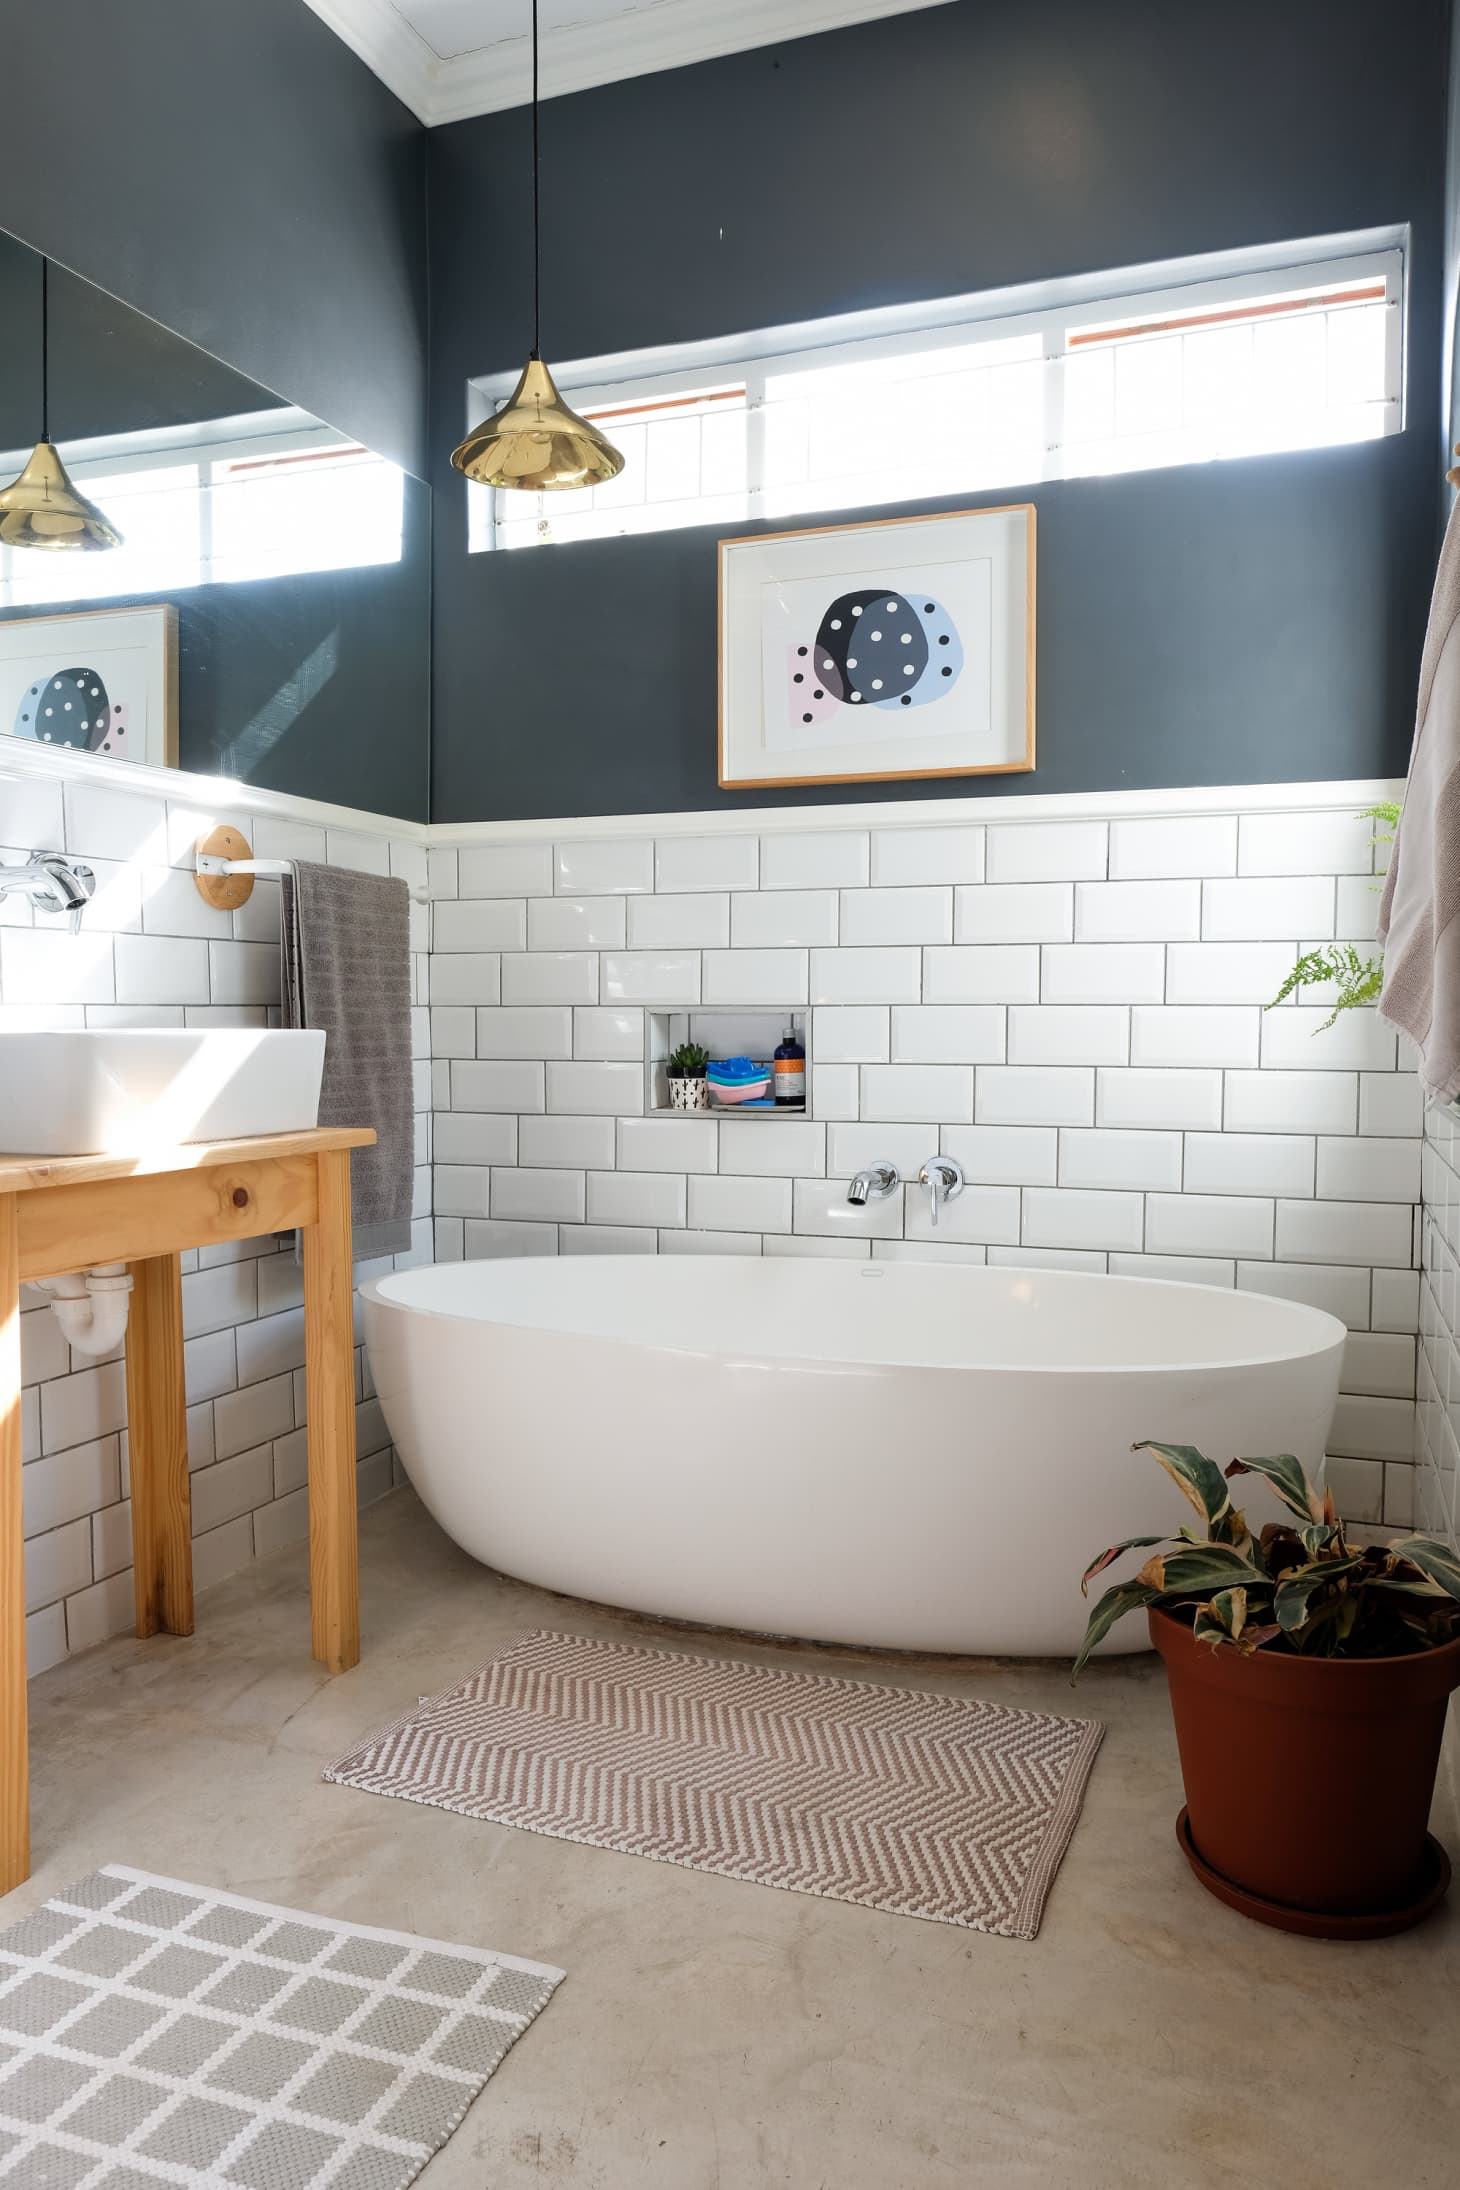 25 Small Bathroom Storage & Design Ideas